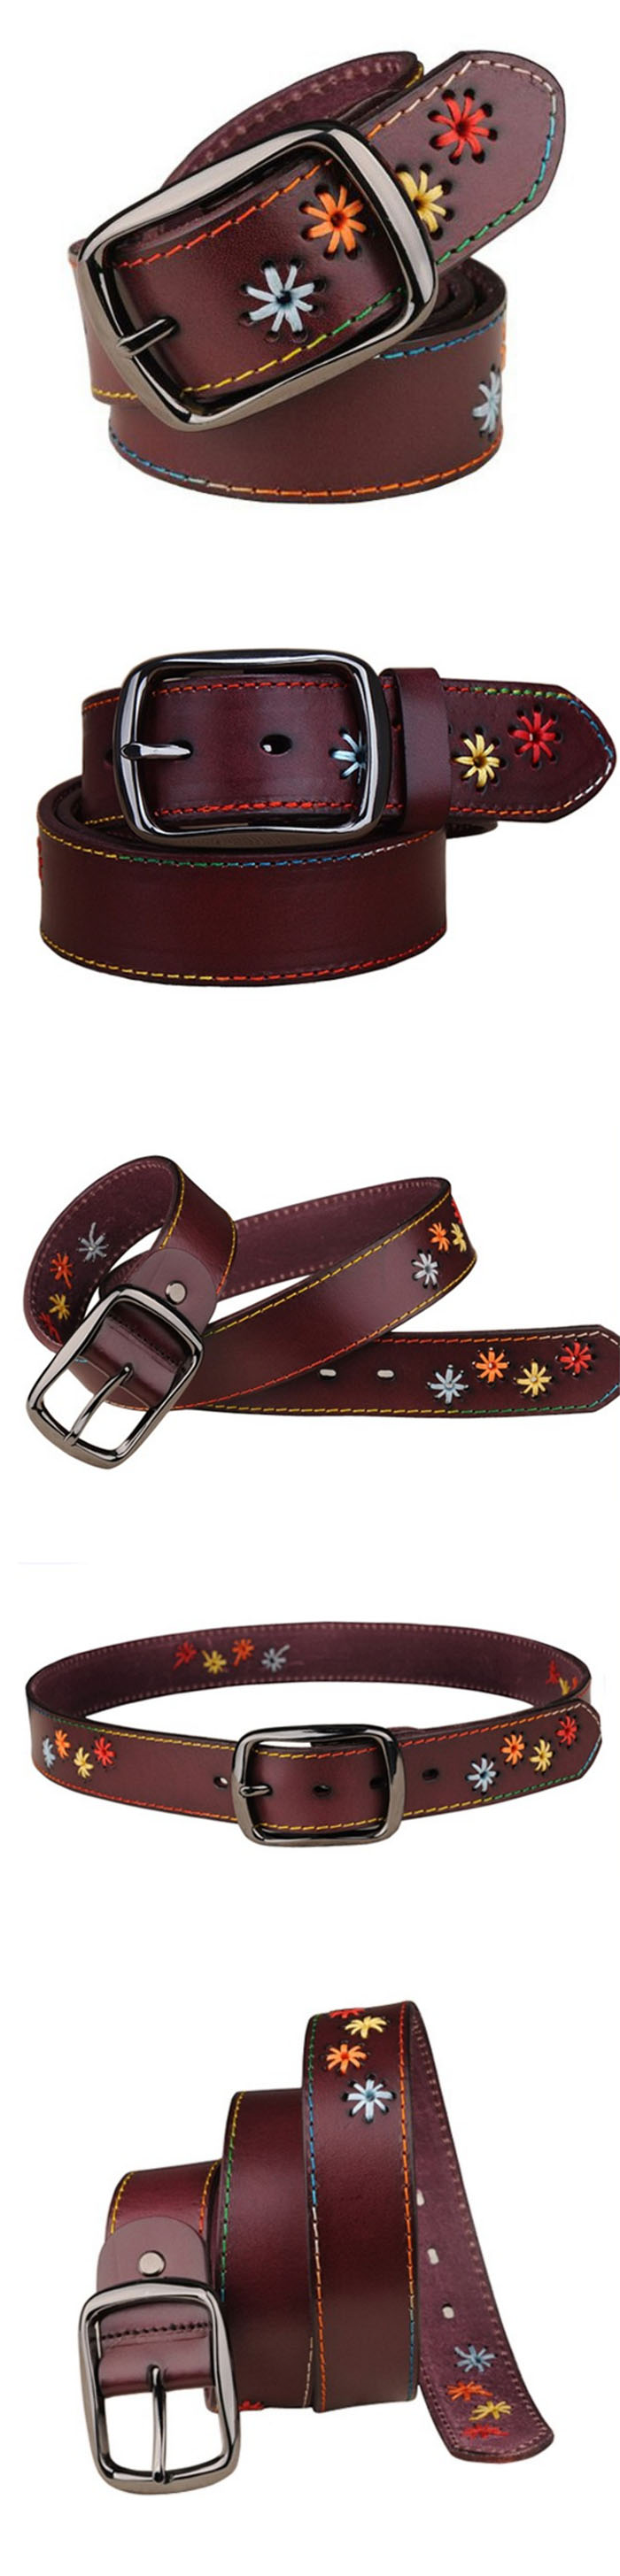 New style fashion leather embroidery belt for women